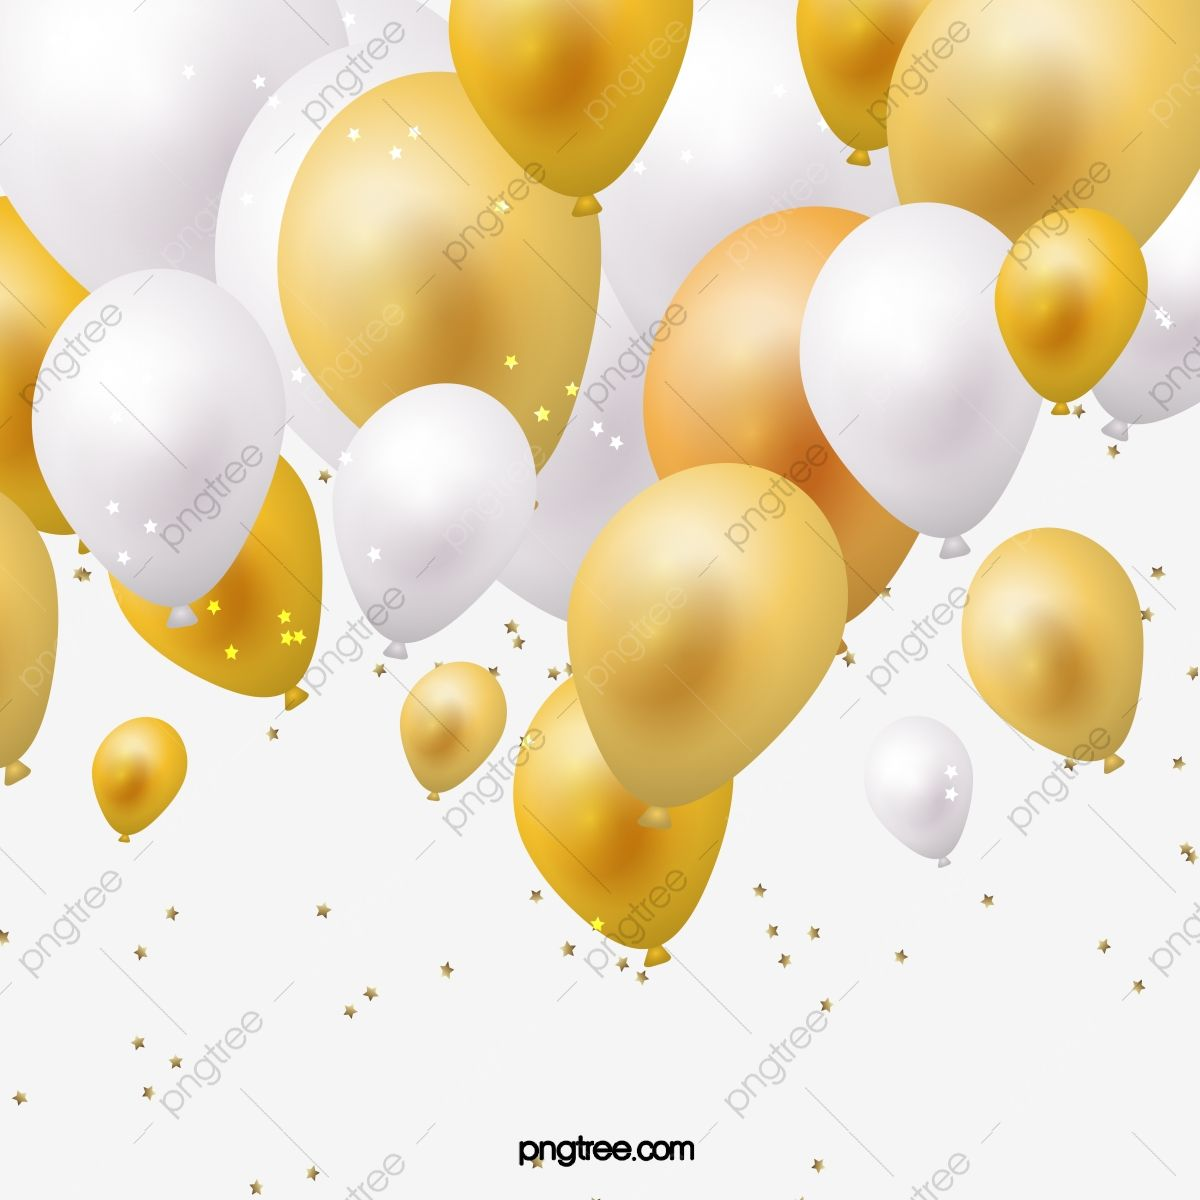 Dream And Silver Balloon Balloon Clipart Vector Png Venus Balloon Png And Vector With Transparent Background For Free Download Silver Balloon Balloon Clipart Balloons